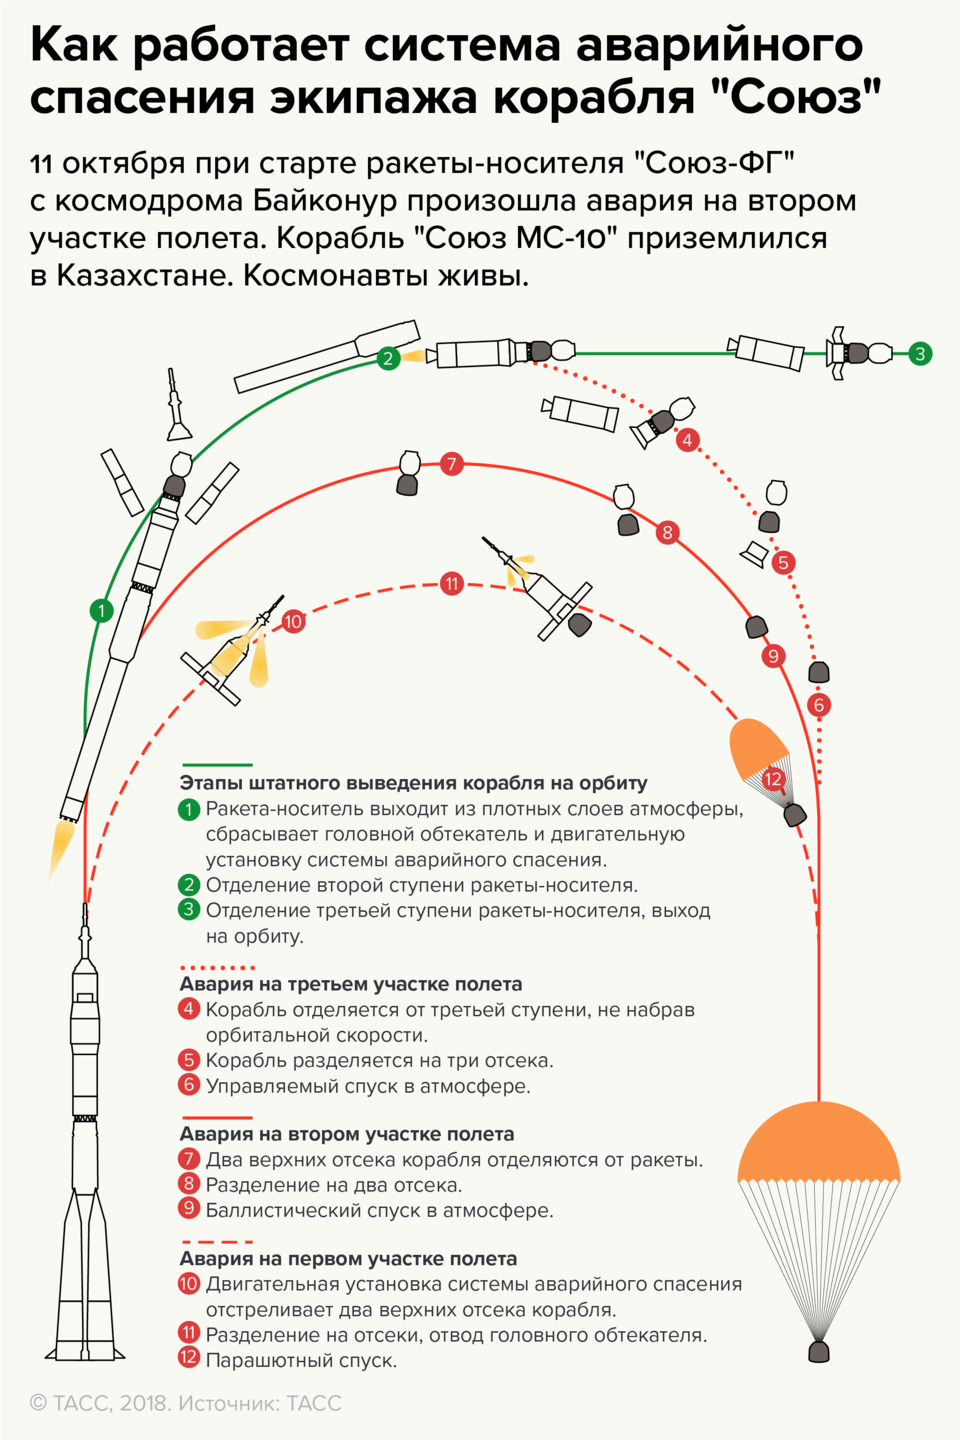 Russian Launch Vehicles and their Spacecraft: Thoughts & News - Page 16 7018379_original